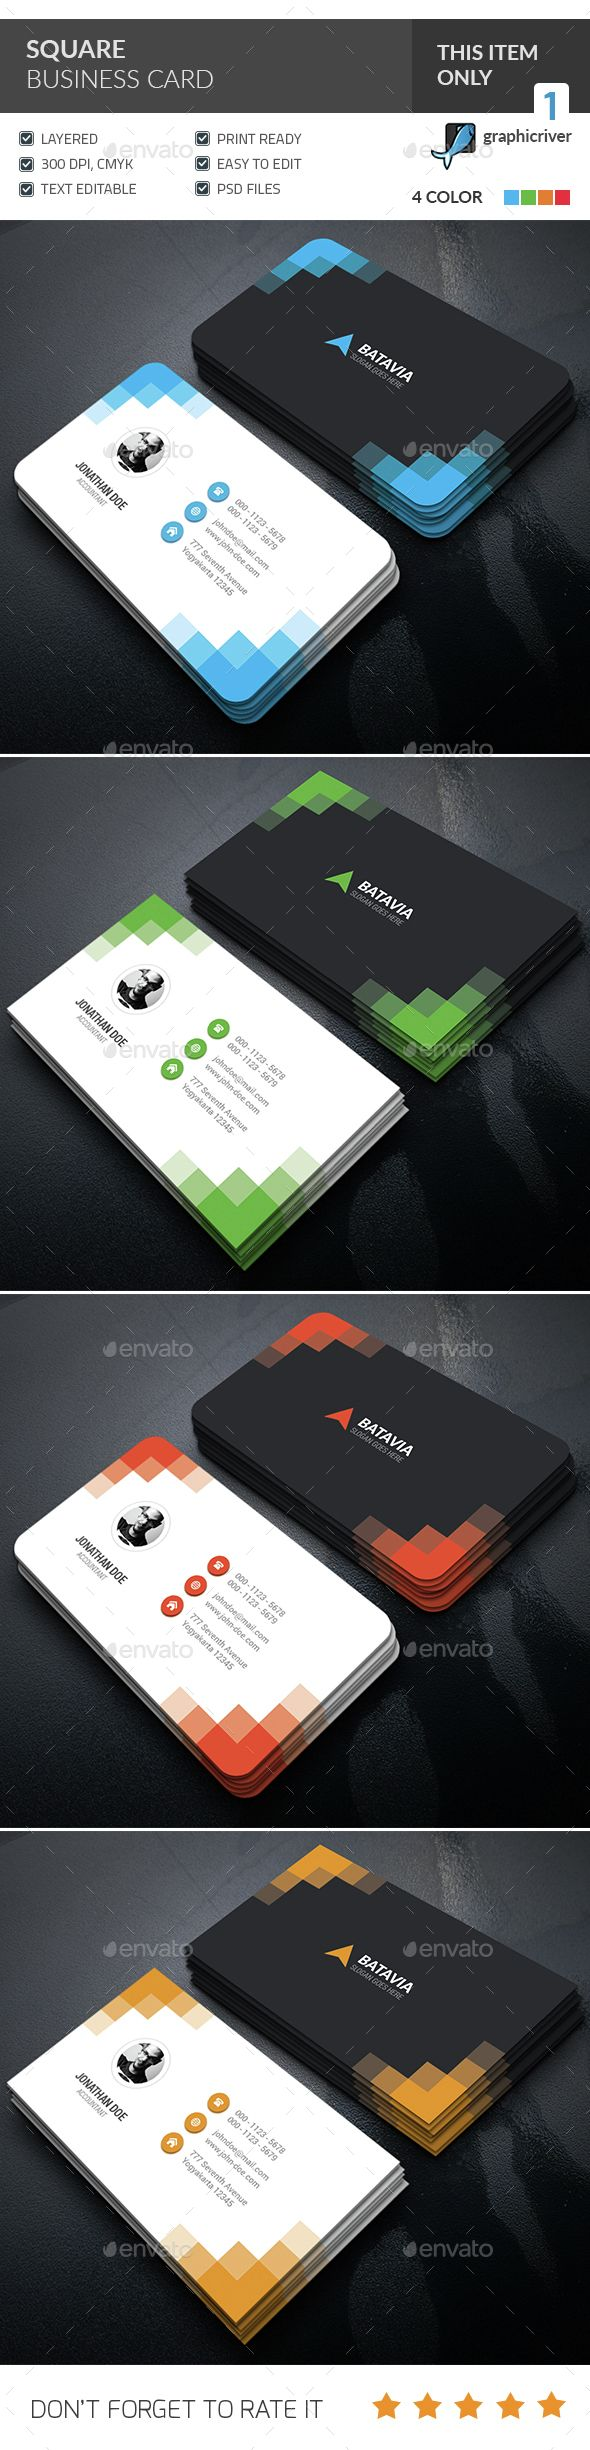 Square Corporate Business Card — Photoshop PSD #clean #multicolor • Available here → https://graphicriver.net/item/square-corporate-business-card-/15301883?ref=pxcr